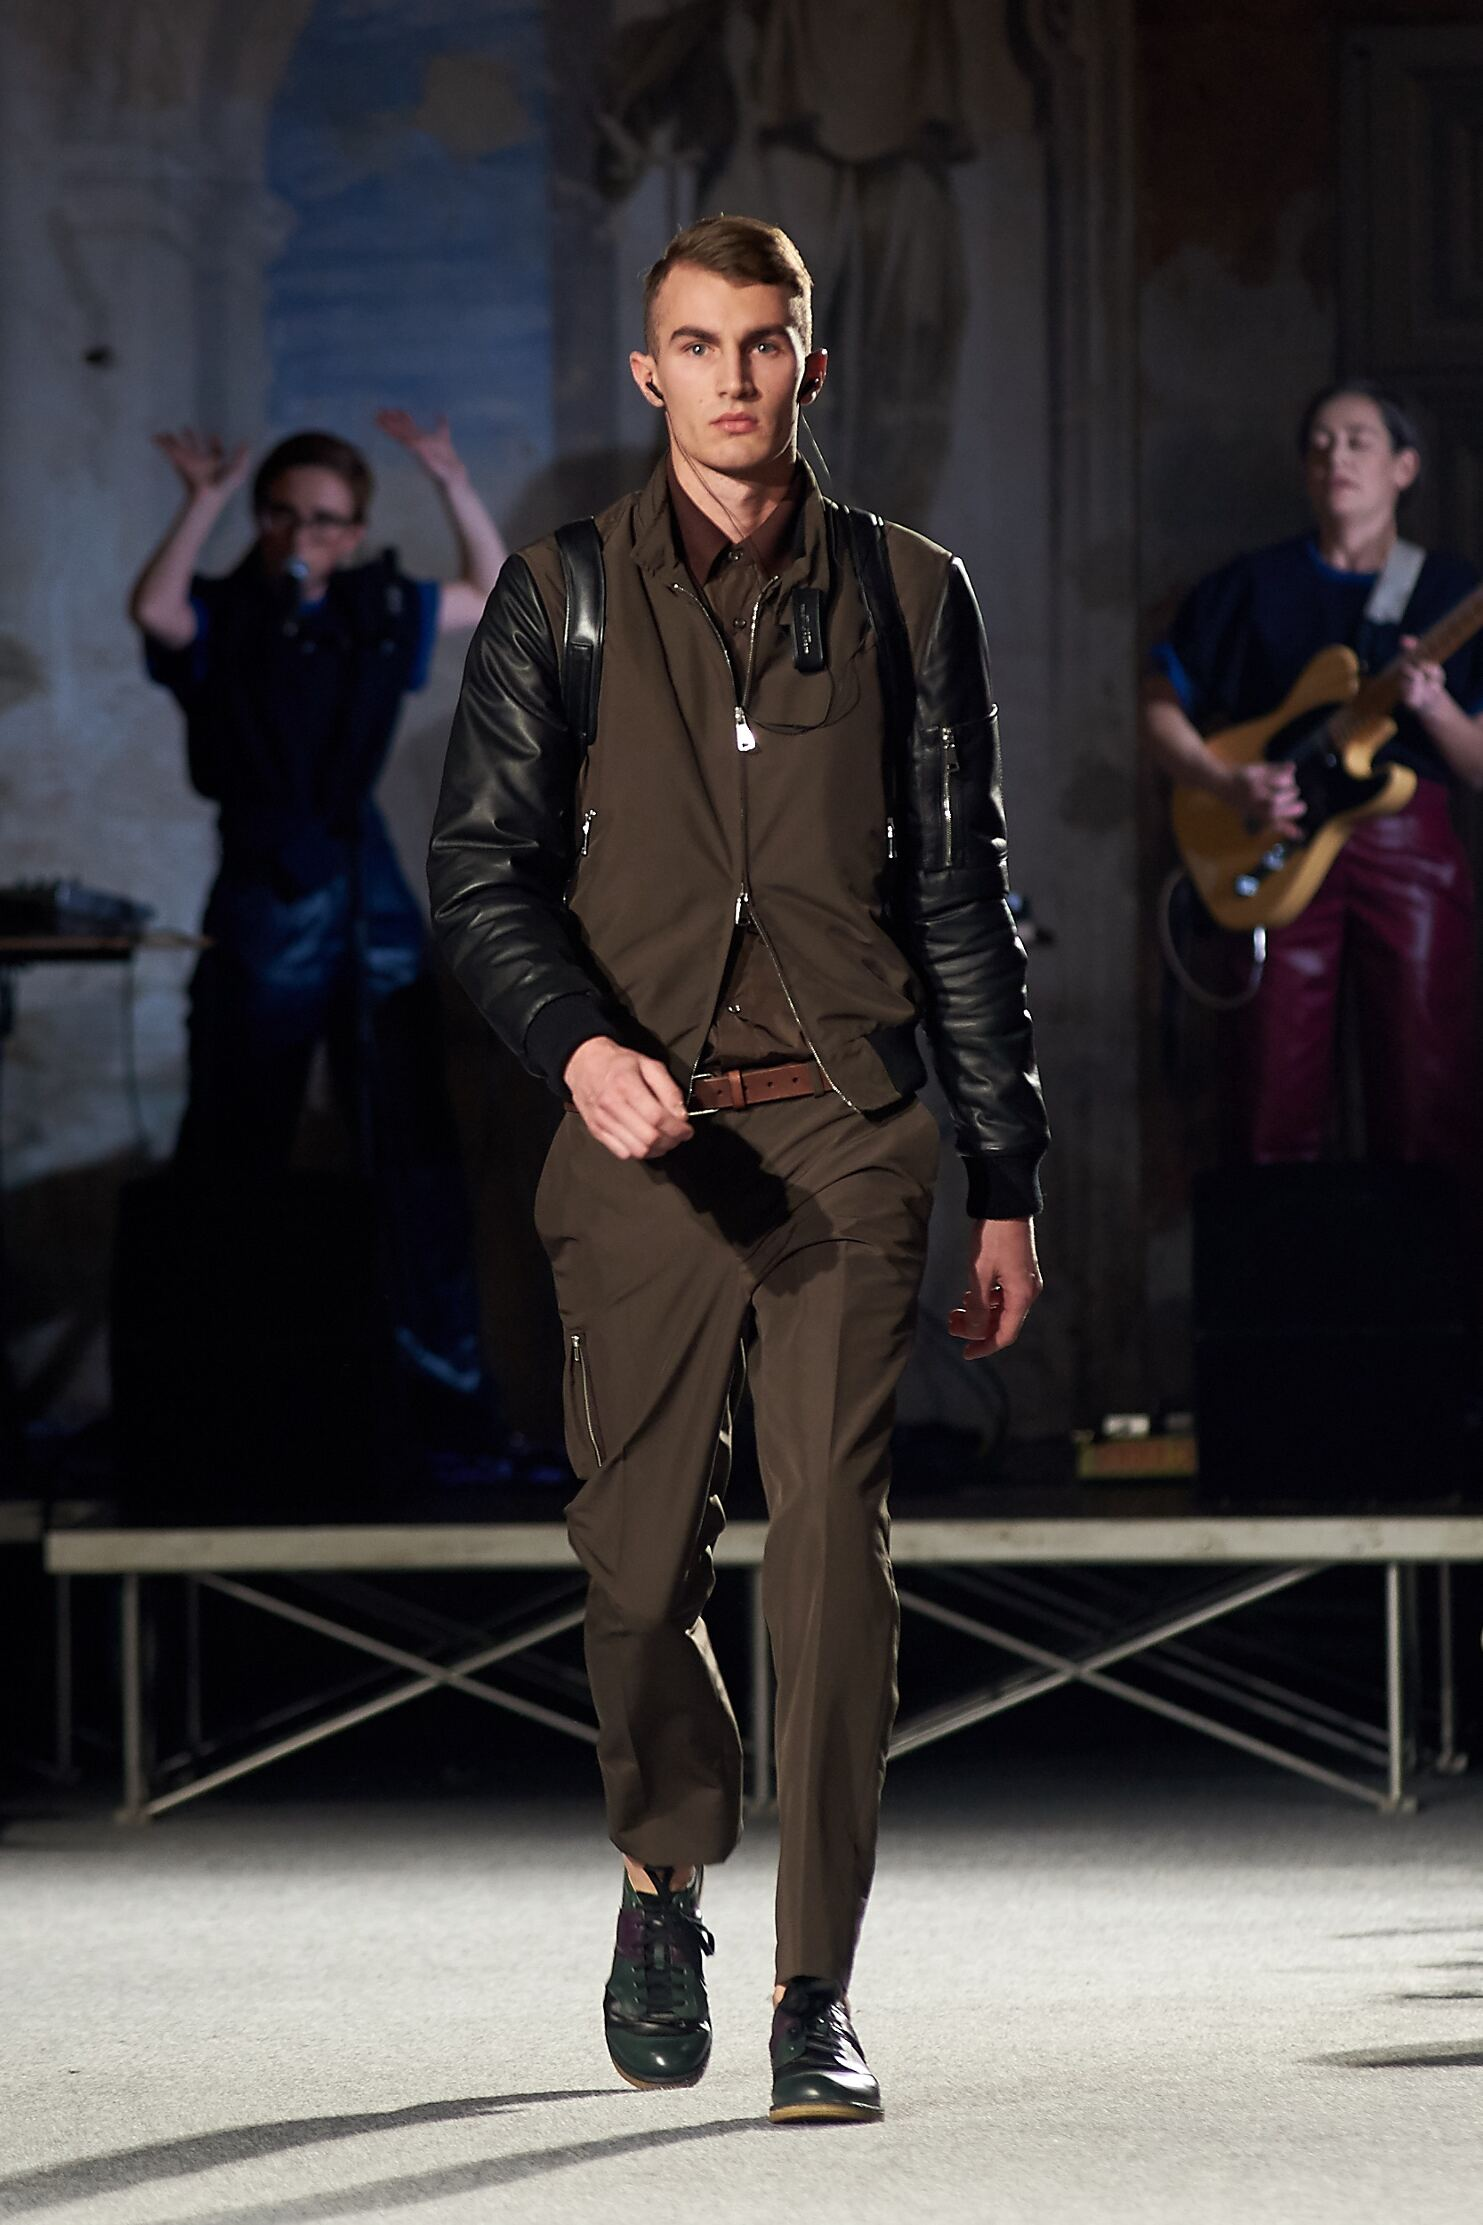 Runway Andrea Incontri Fall Winter 2015 Men's Collection Pitti Immagine Uomo